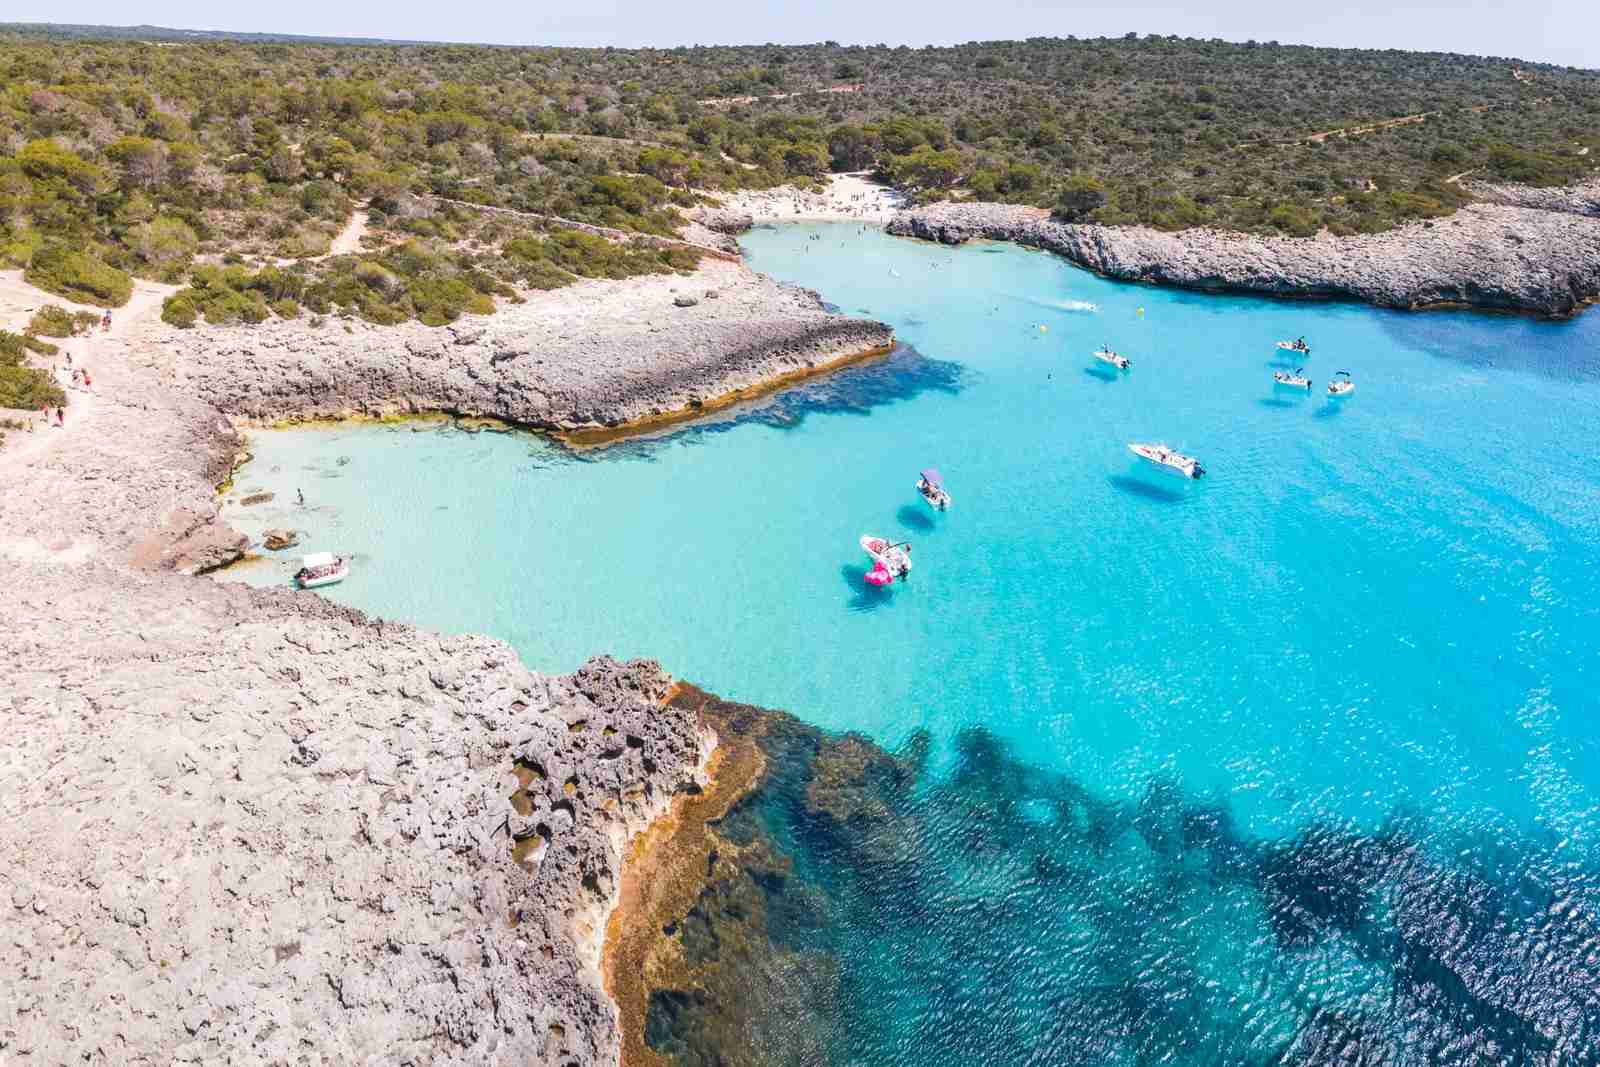 Cala Des Talaier beach. (Photo by Matteo Colombo / Getty Images)